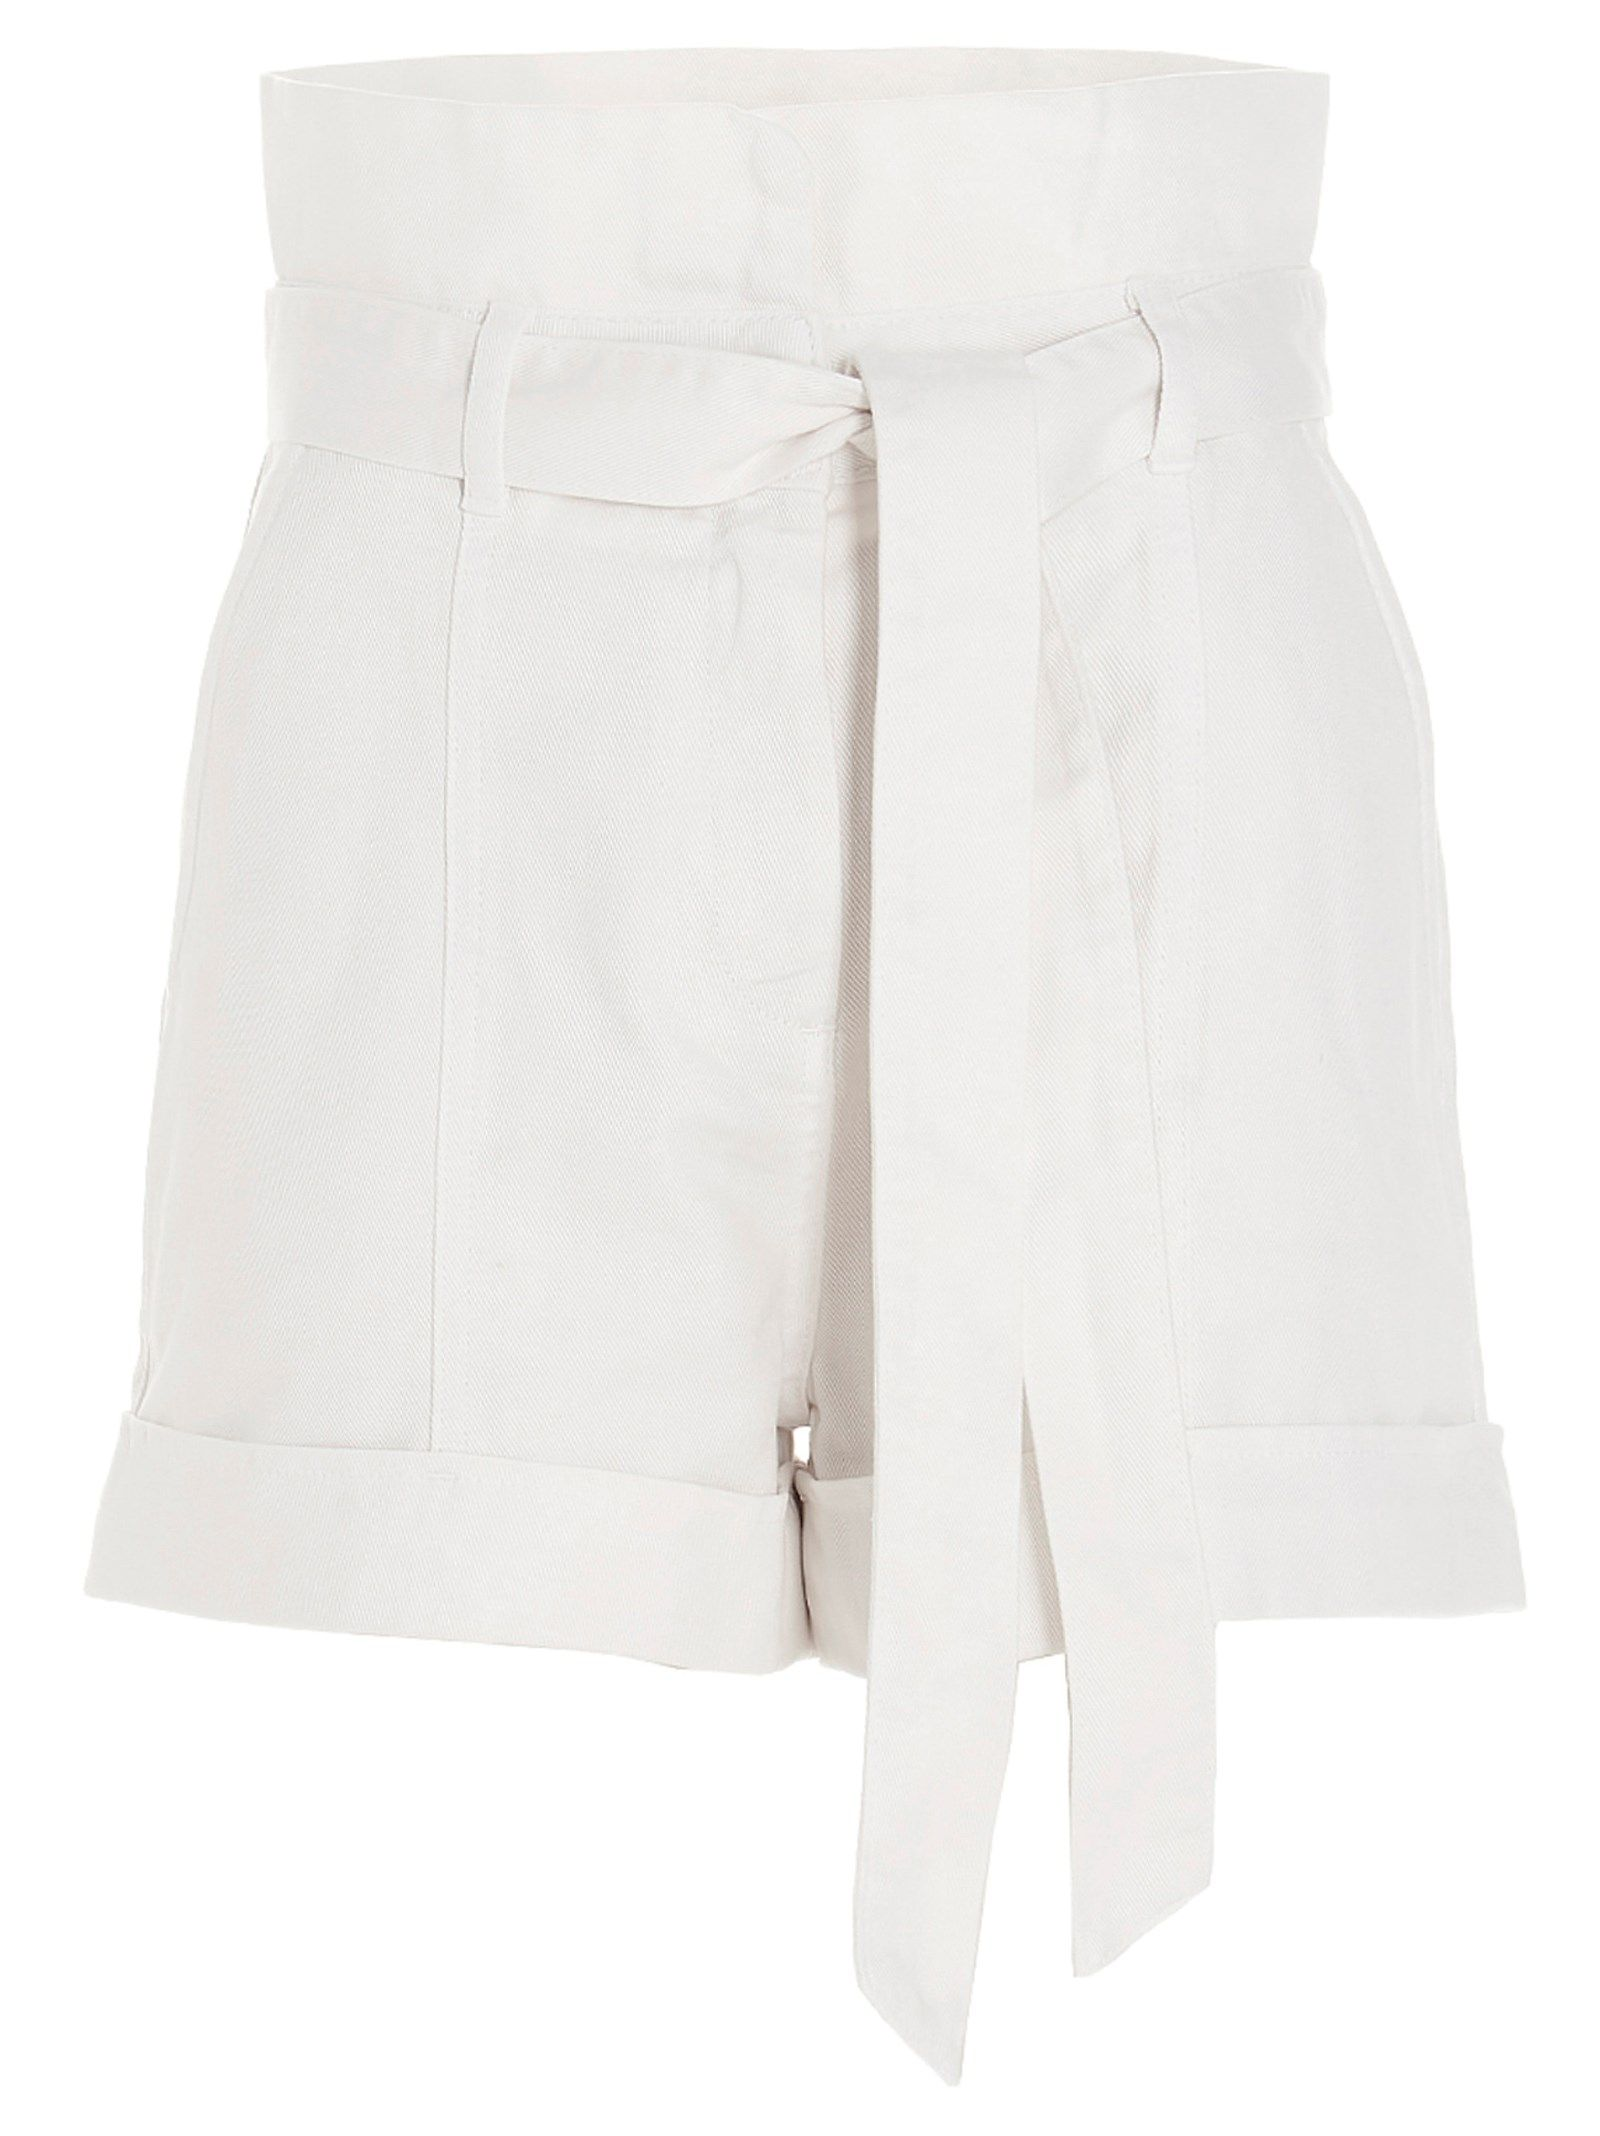 Twinset TWIN-SET WOMEN'S 211TT233000282 WHITE OTHER MATERIALS SHORTS